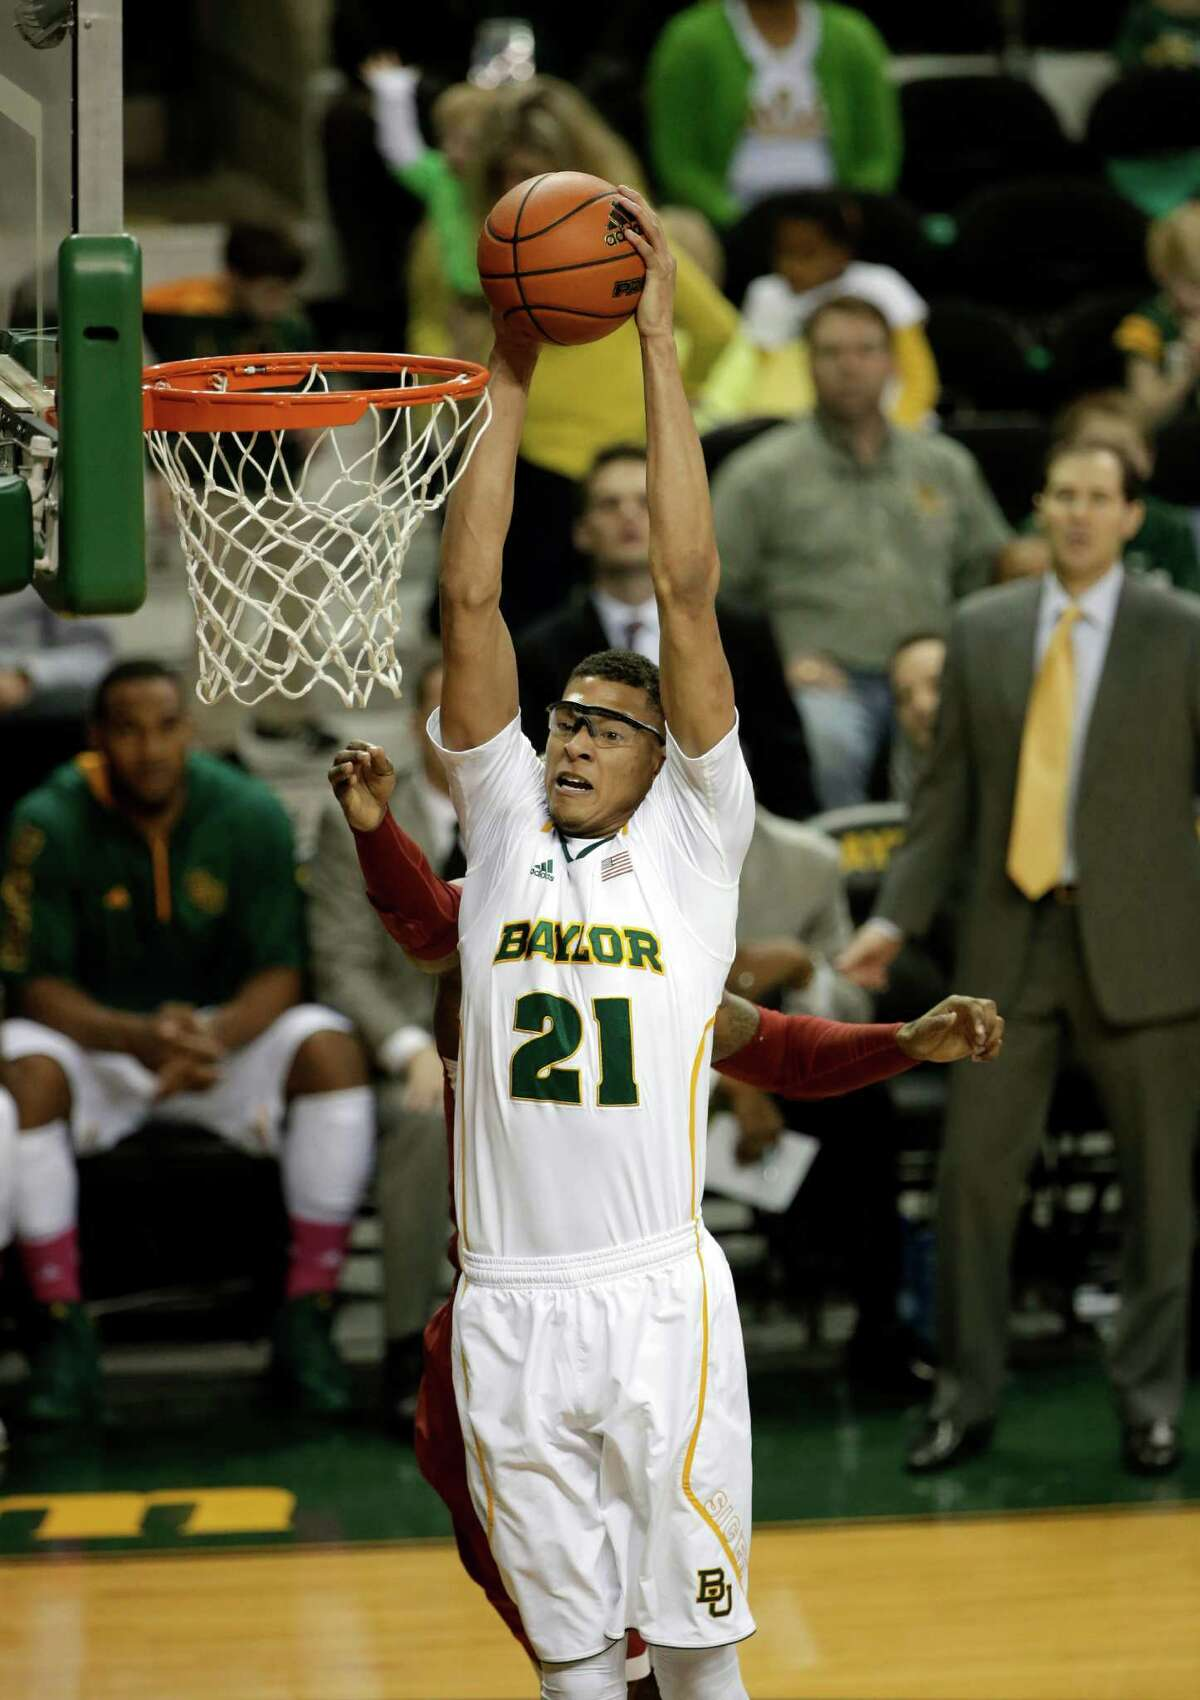 3368 x 4768~~$~~Baylor center Isaiah Austin (21) comes down with a rebound in front of an Oklahoma defender in the first half of an NCAA college basketball game Wednesday, Jan. 30, 2013, in Waco, Texas. Austin had 17-rebounds in the 74-71 Oklahoma win.